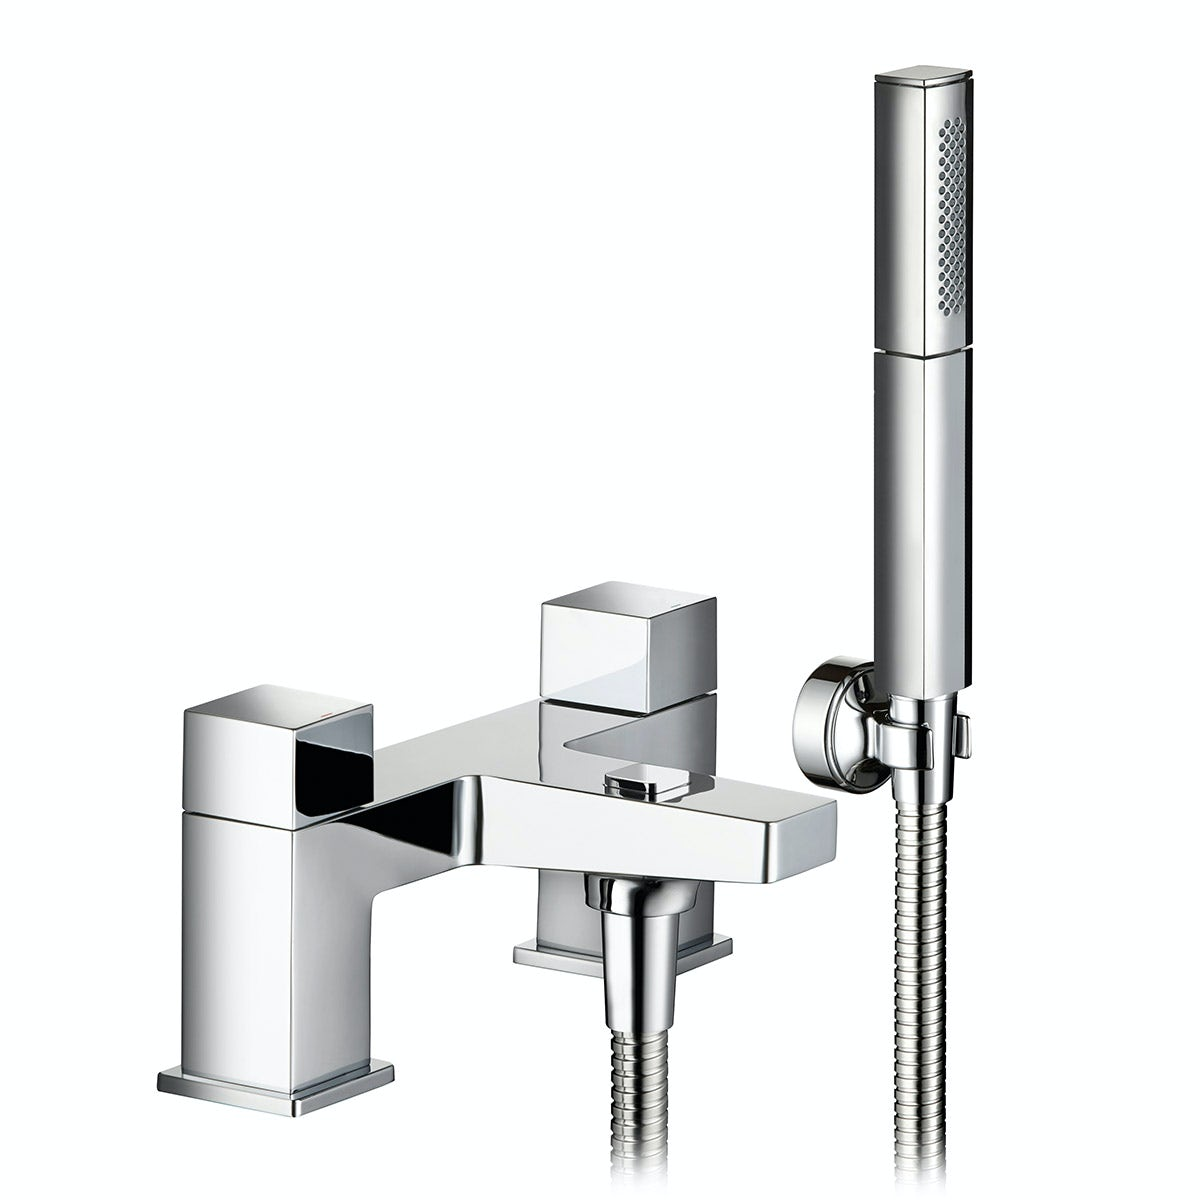 Mira Honesty bath shower mixer tap